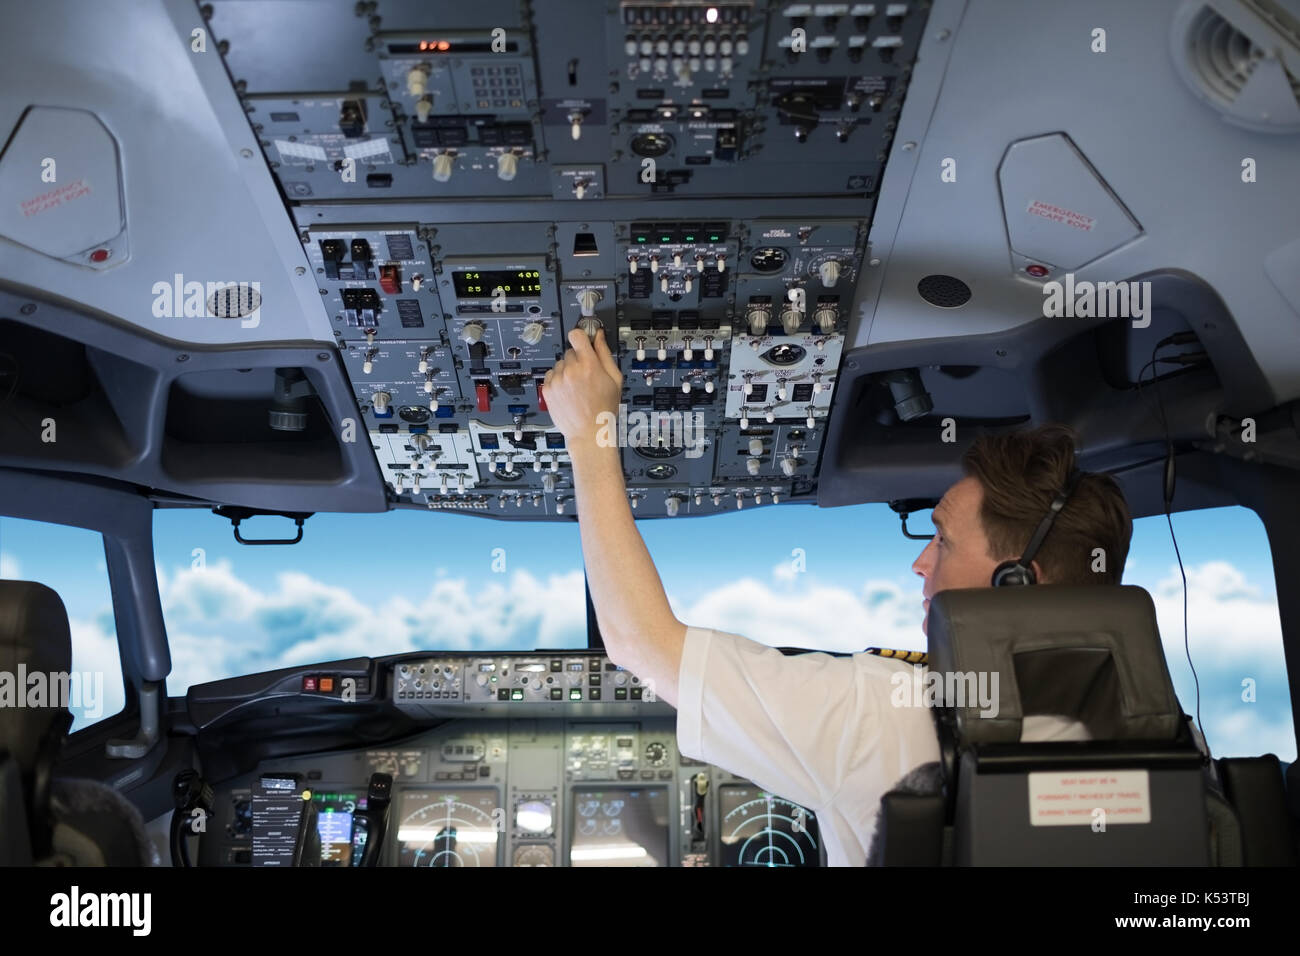 Rear view of male pilot switching controls on dashboard in airplane cockpit - Stock Image